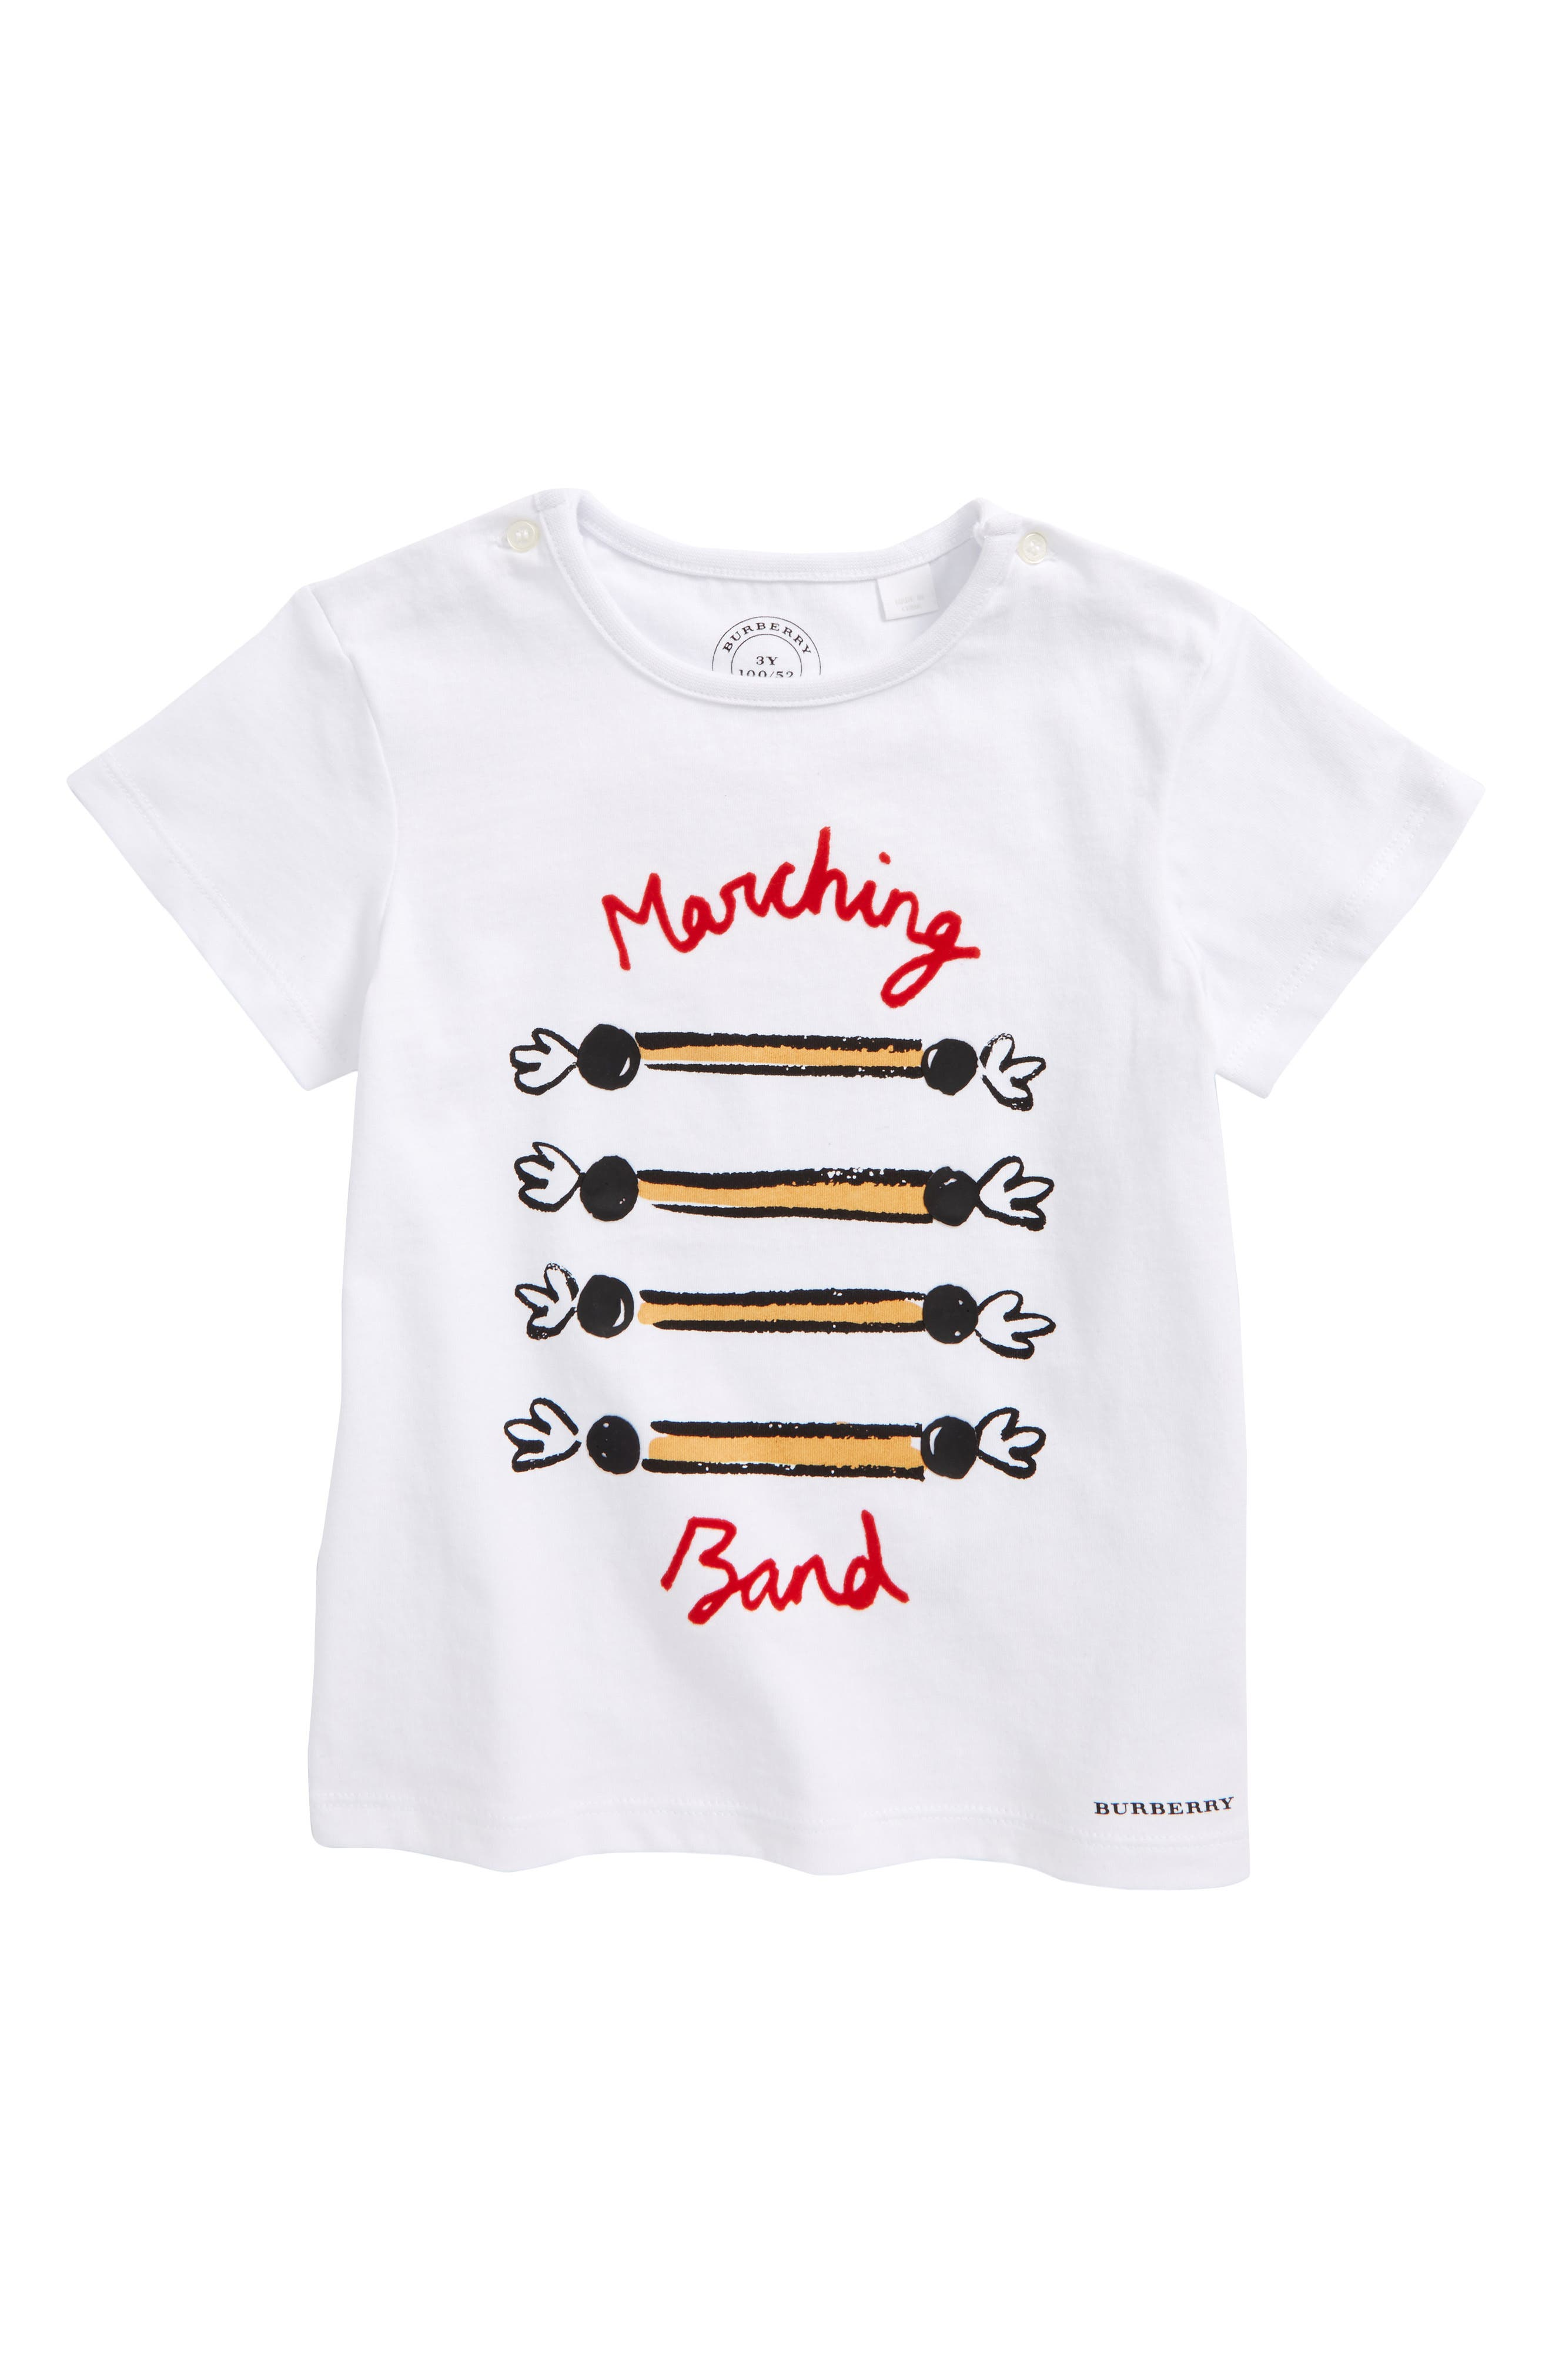 Marching Band Tee,                         Main,                         color, 100